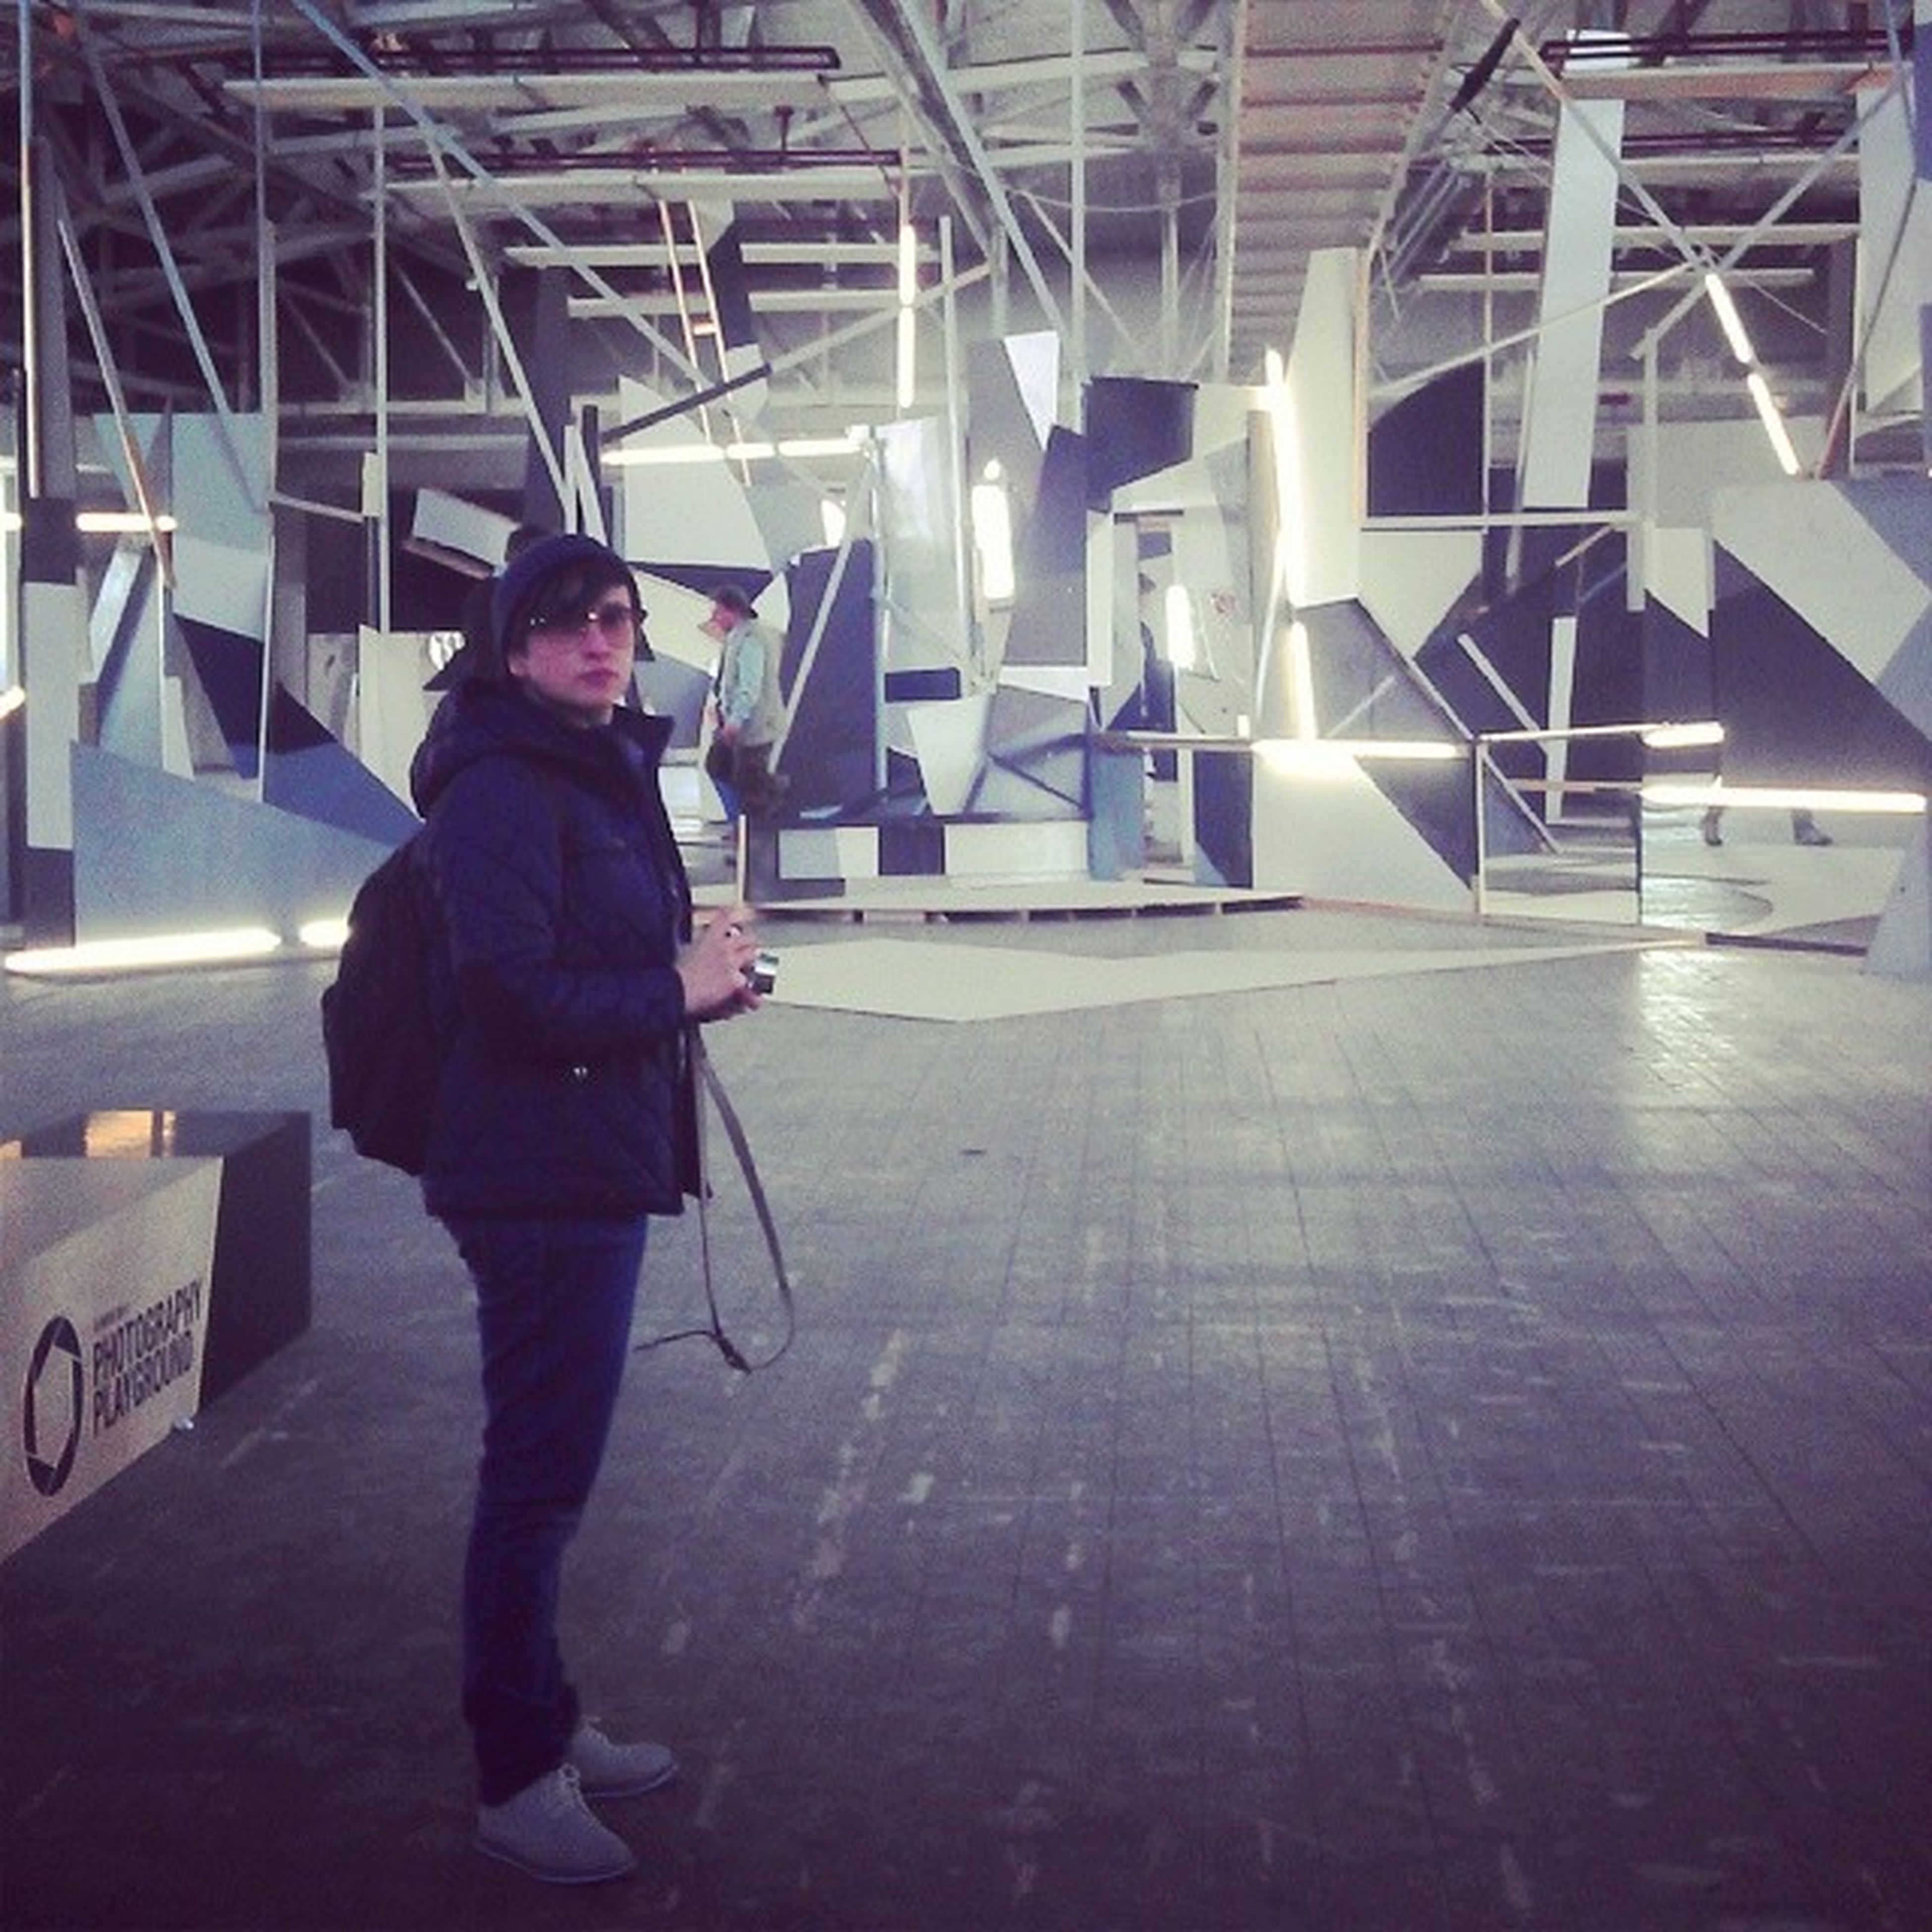 Being artsy and stuff. Berlin Olympus Photographyplayground Clemensbehr